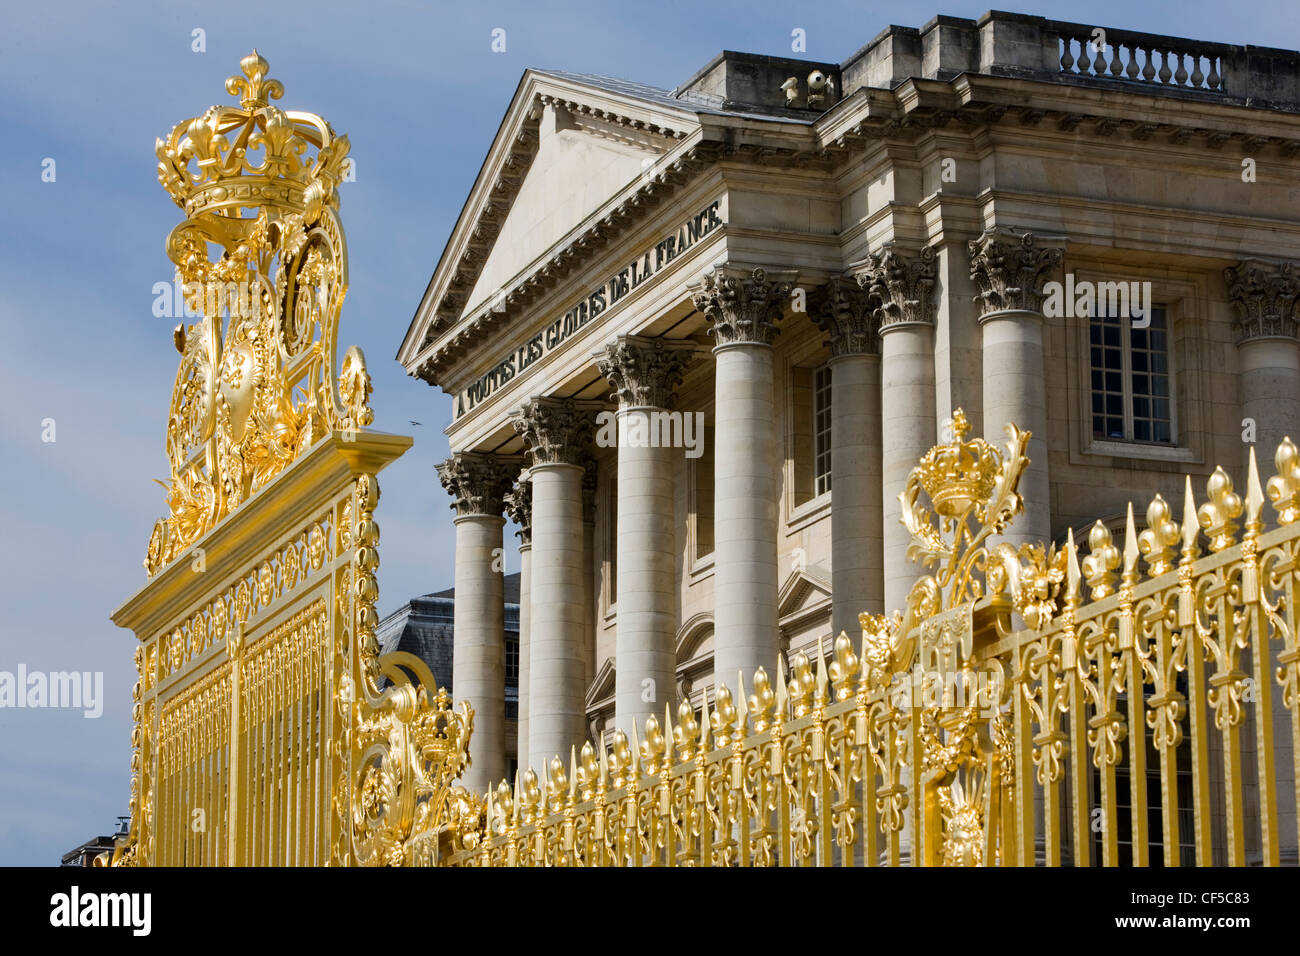 Gold gilded gates, colonnades and pediment at The Palace of Versailles, France - Stock Image